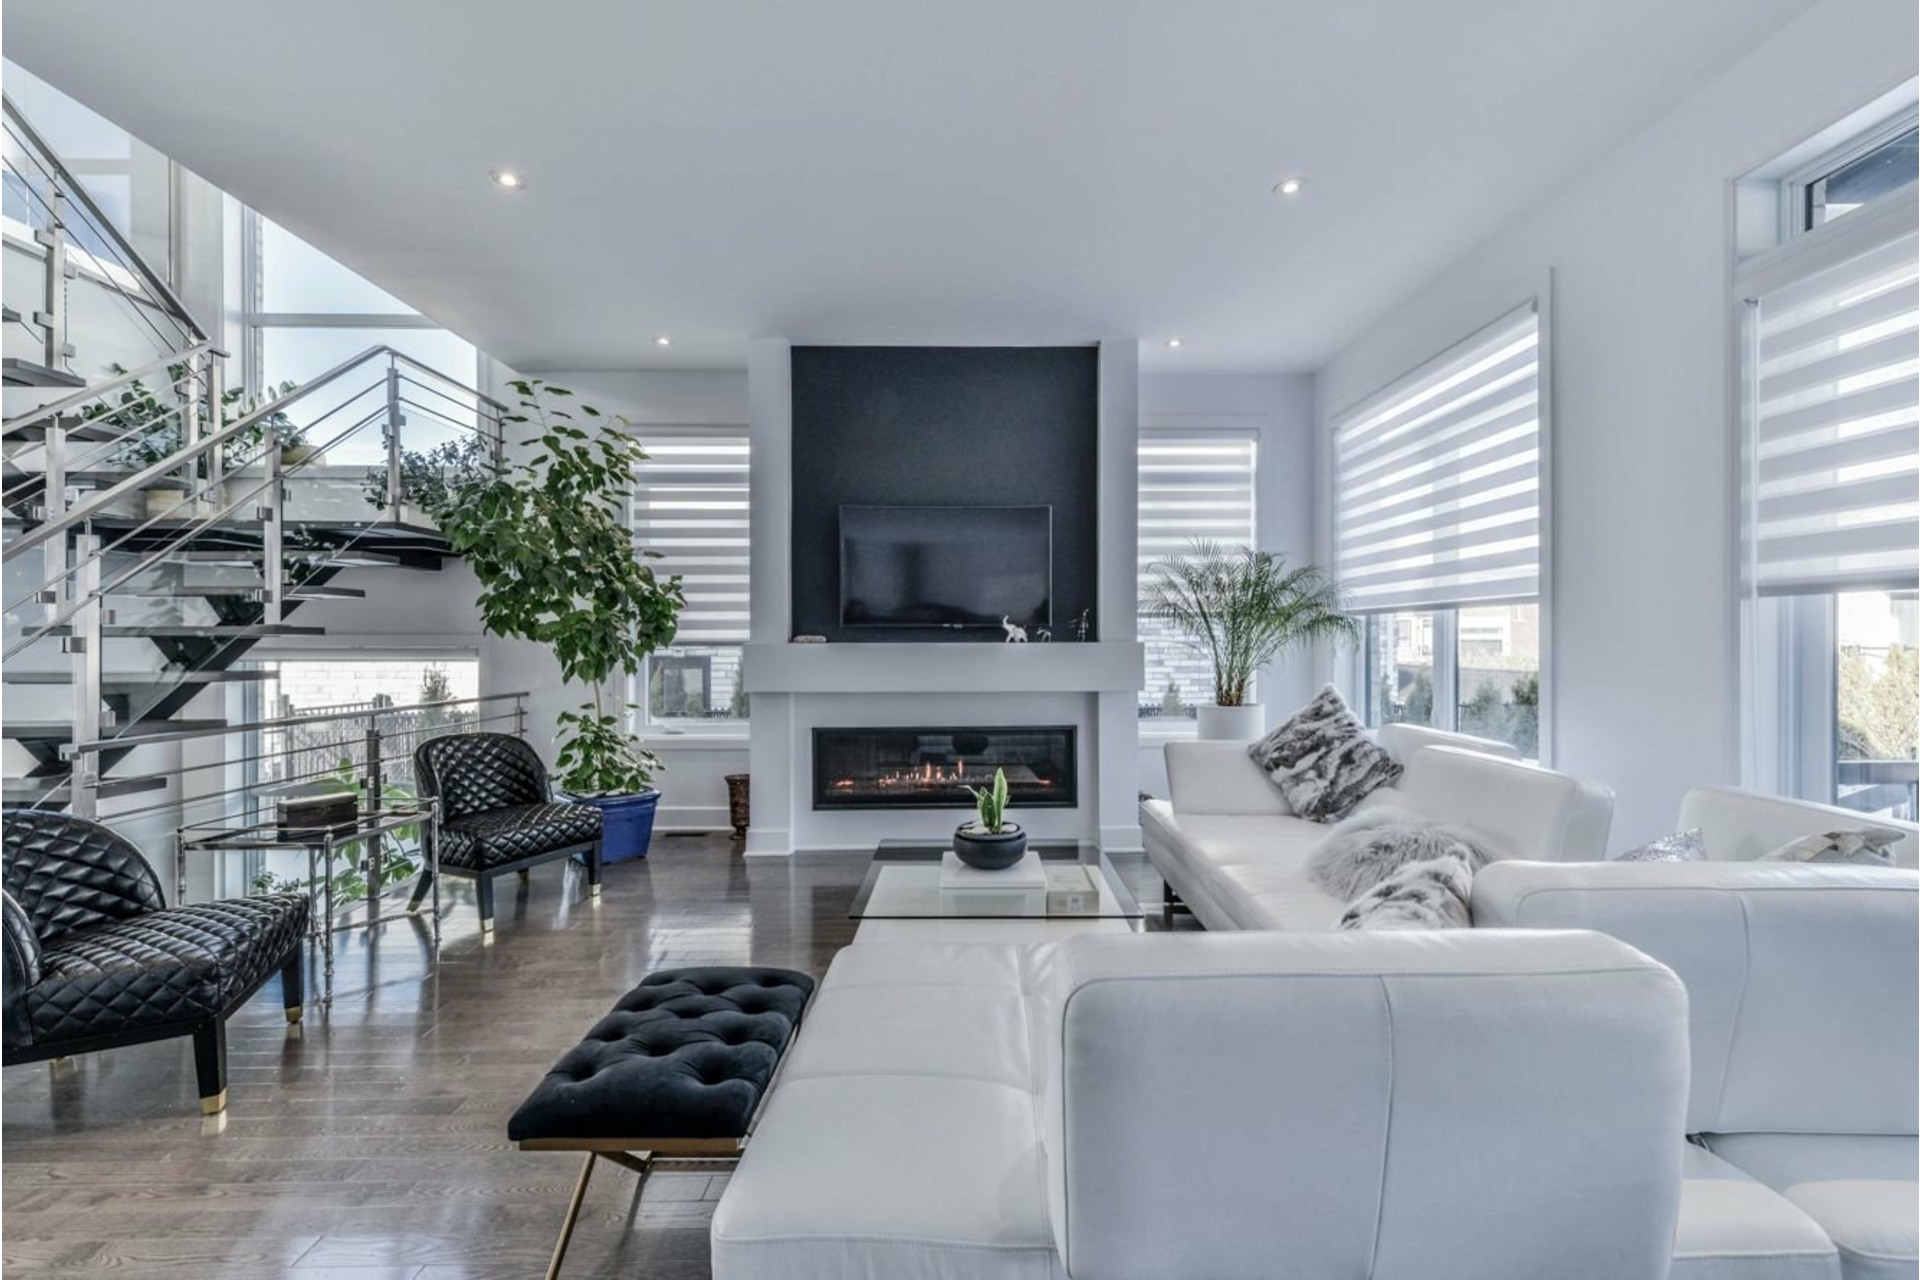 image 9 - House For sale Brossard - 7 rooms